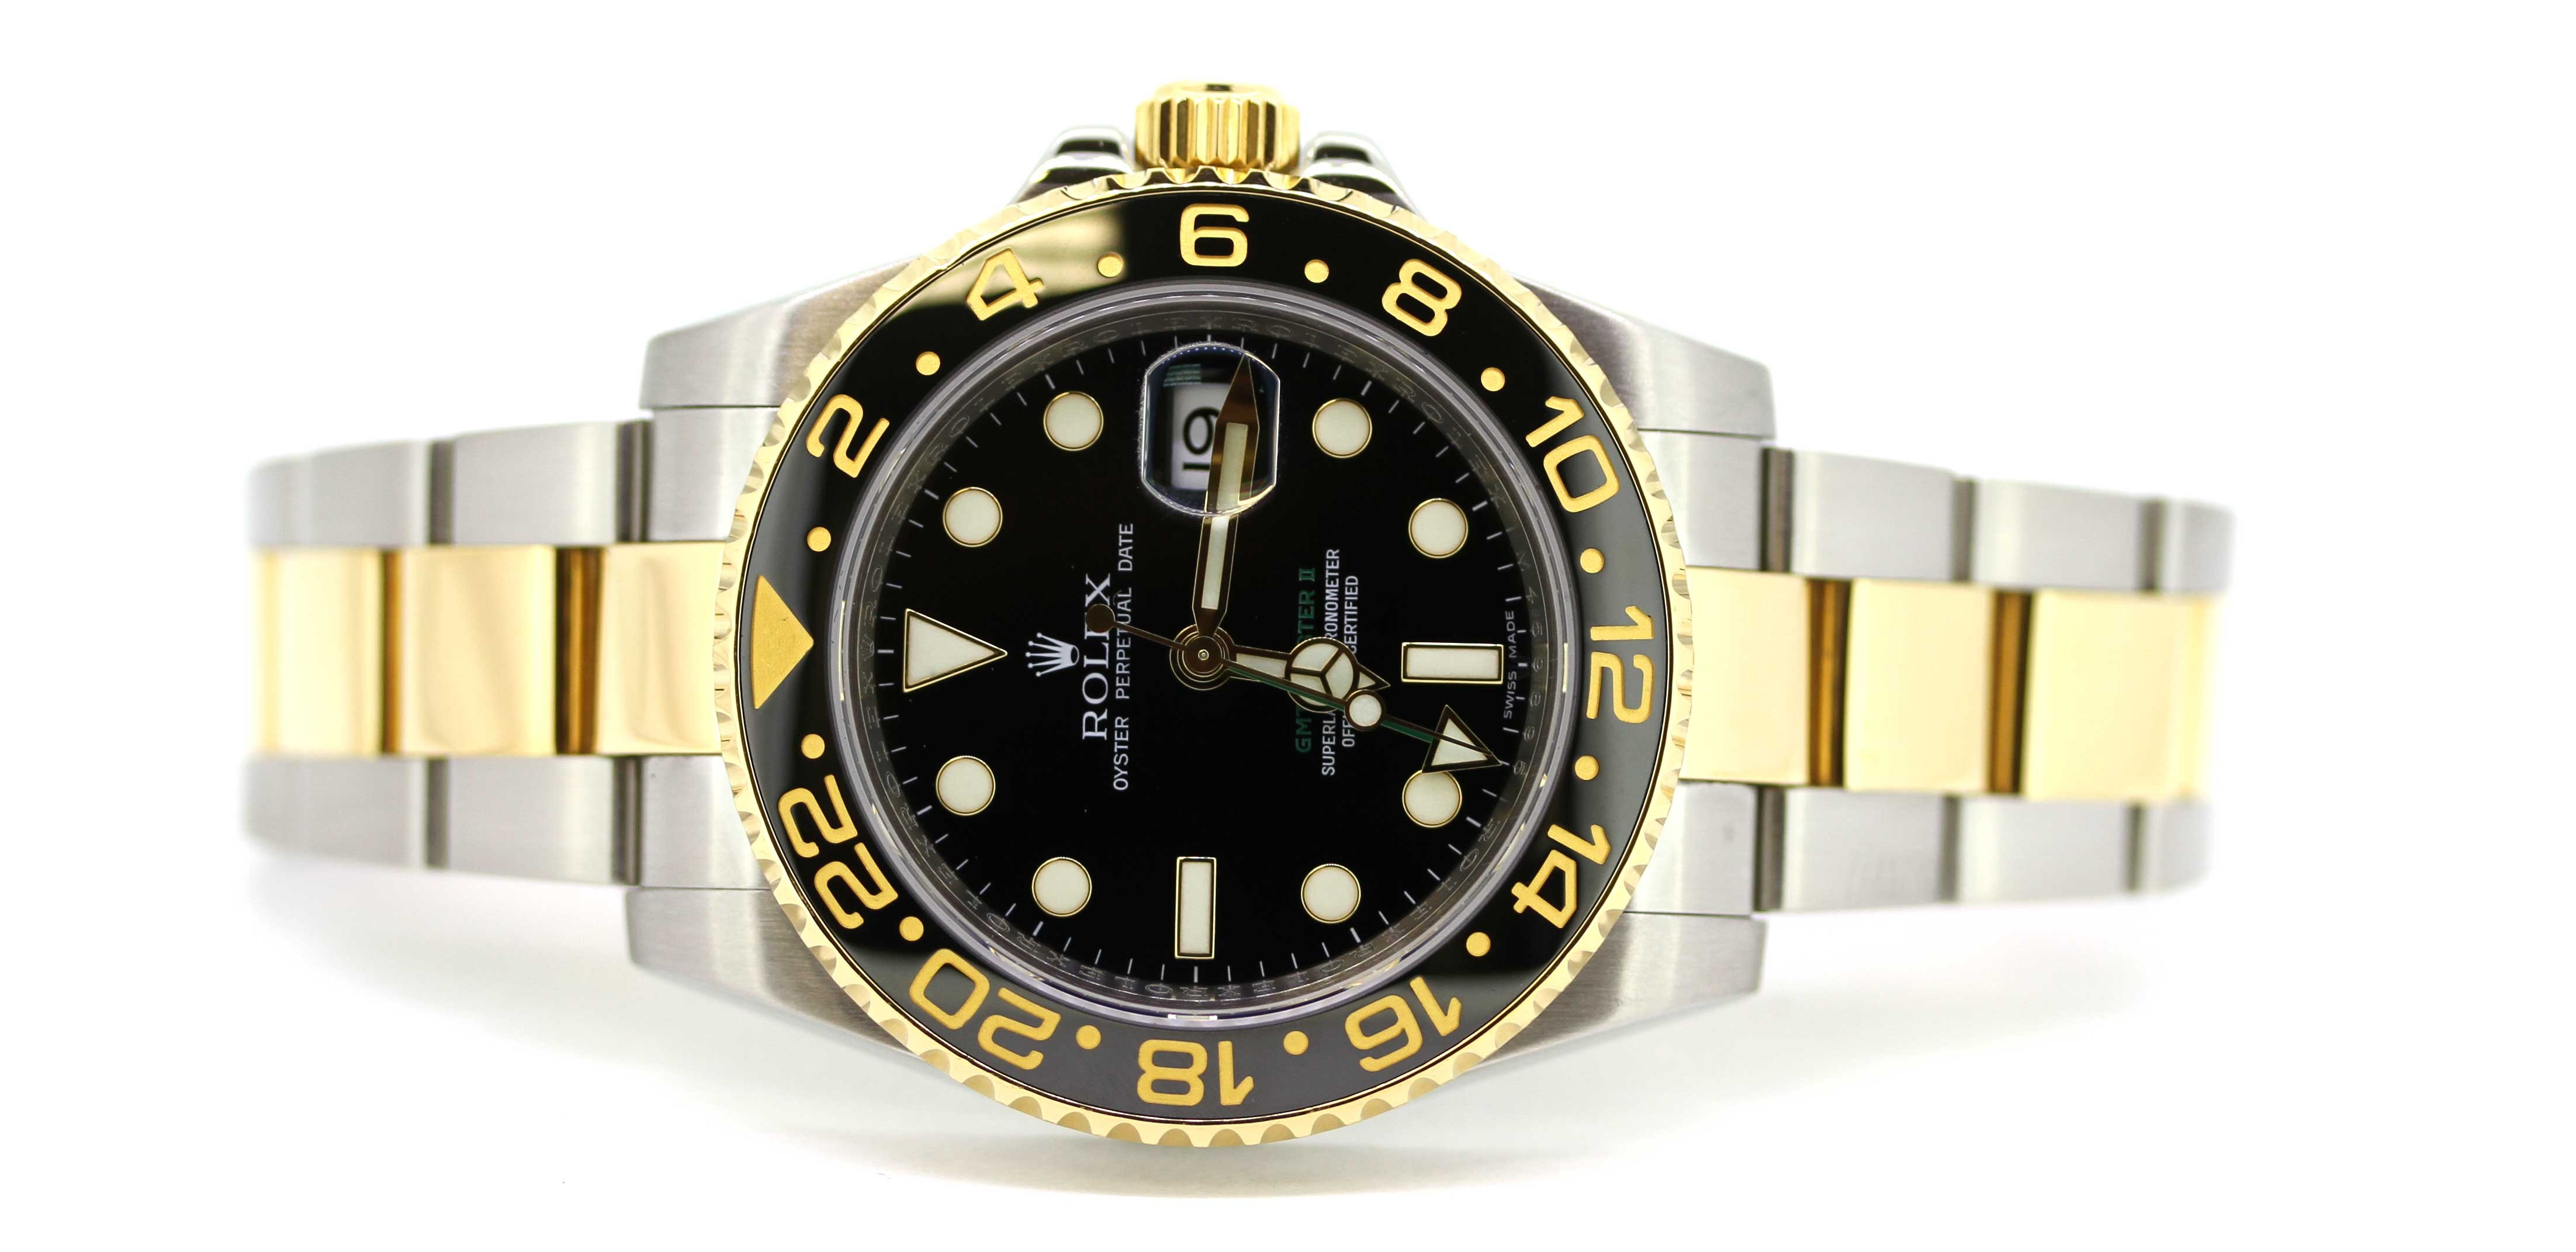 Rolex GMT Master II in steel and gold 116713